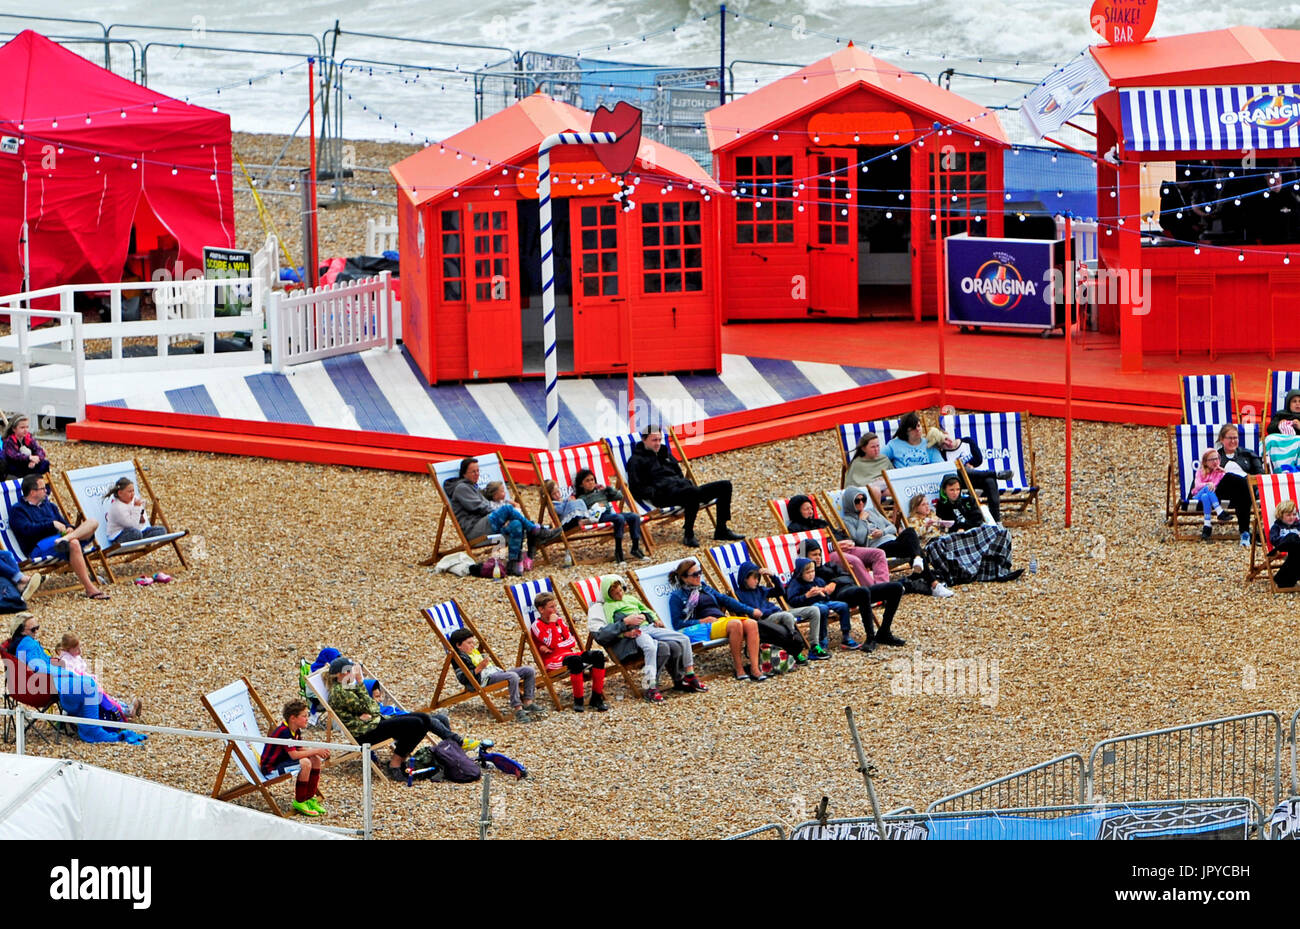 Cinema Uk Stock Photos Amp Cinema Uk Stock Images Alamy